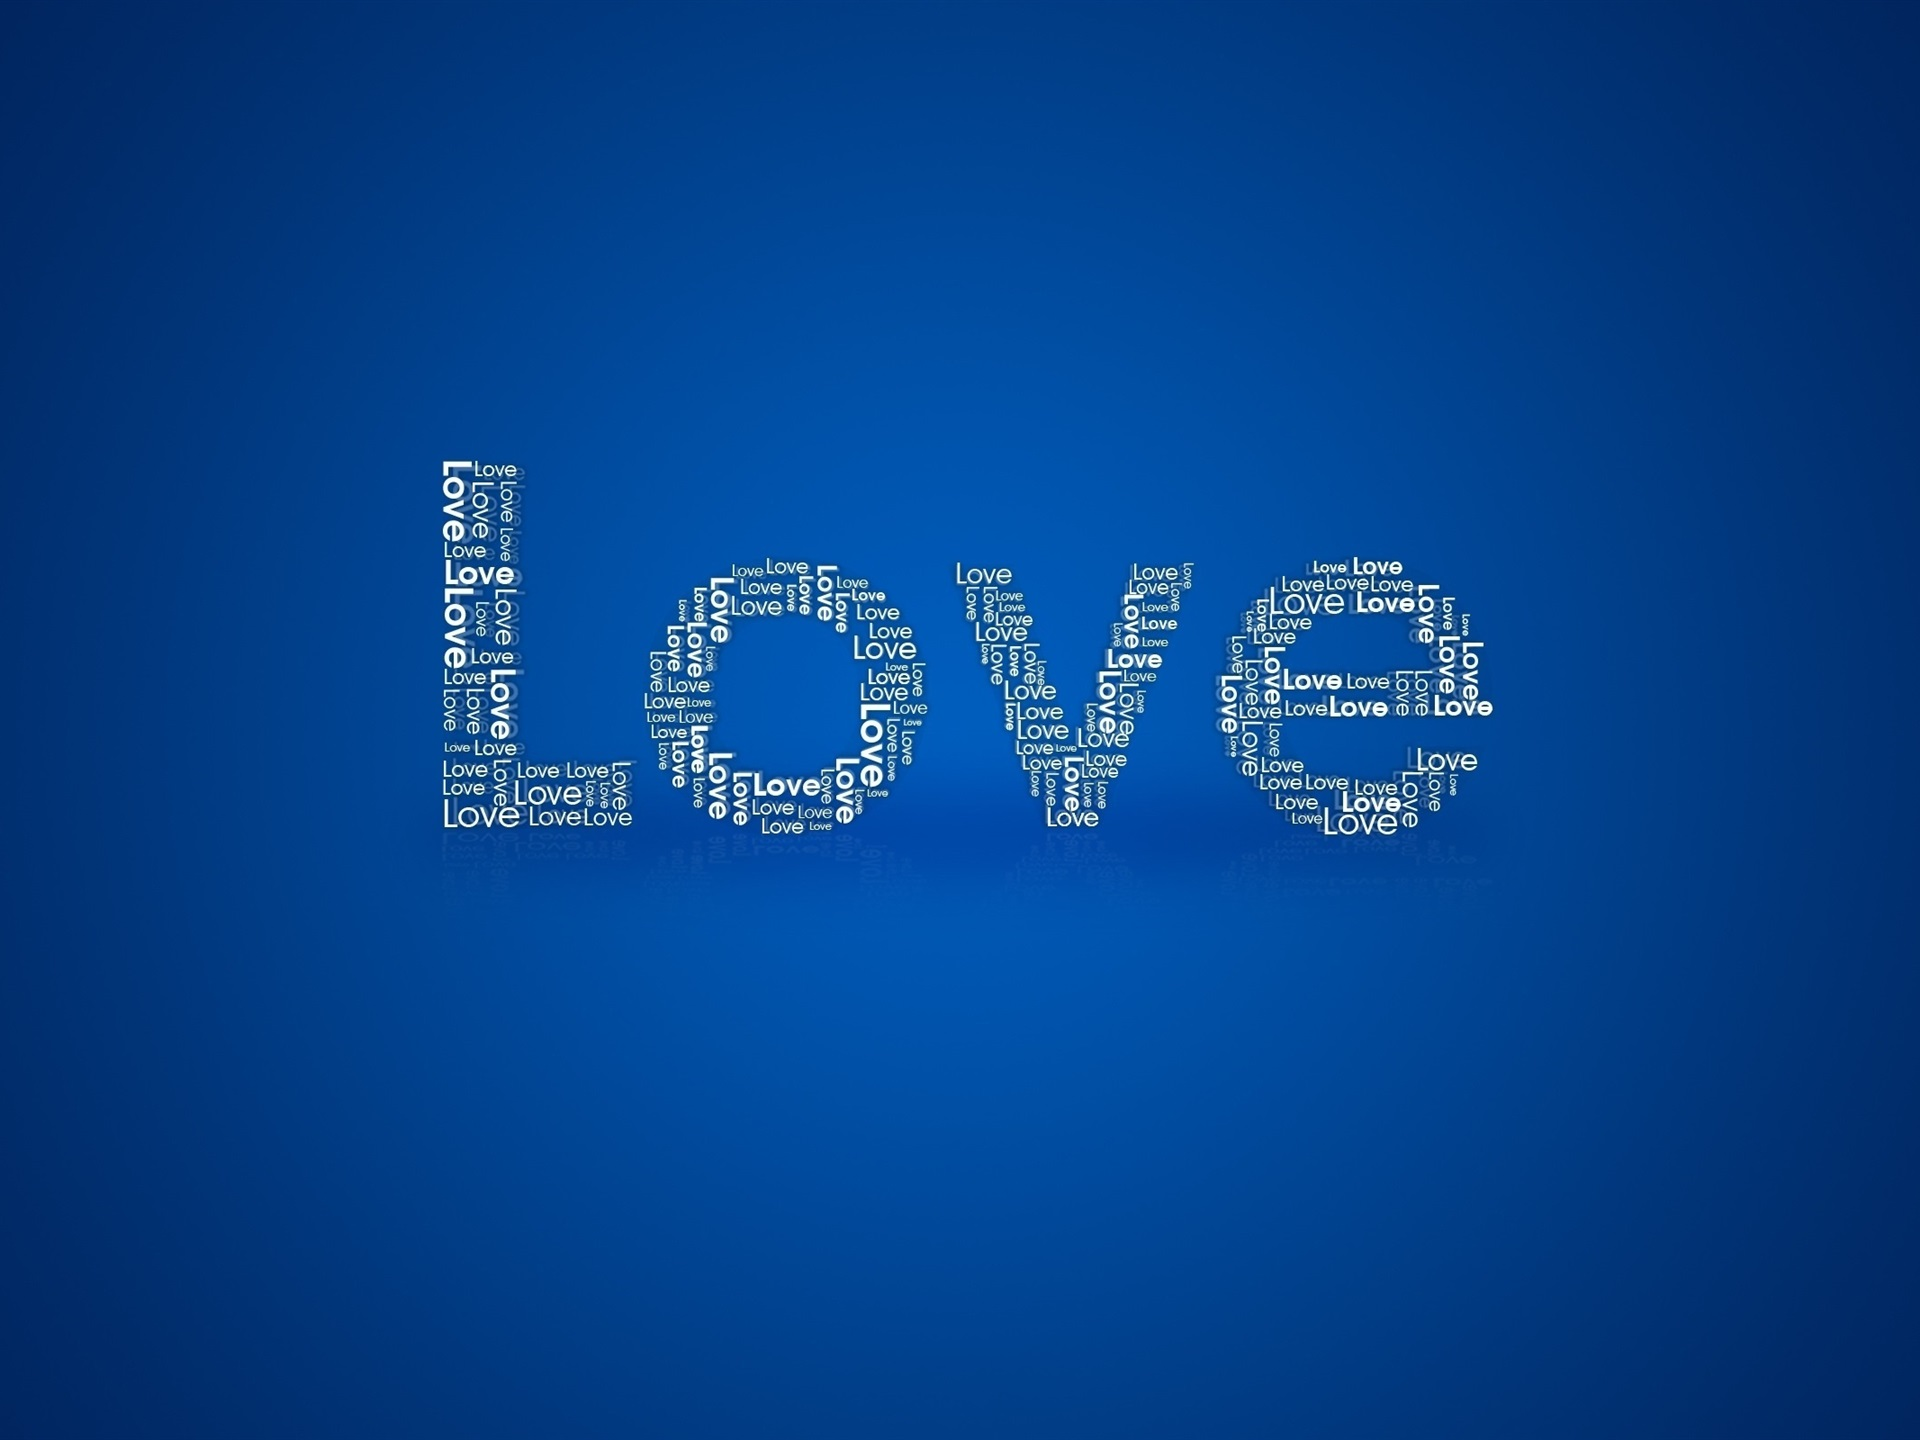 Wallpaper Love Blue Background 2560x1600 Hd Picture Image